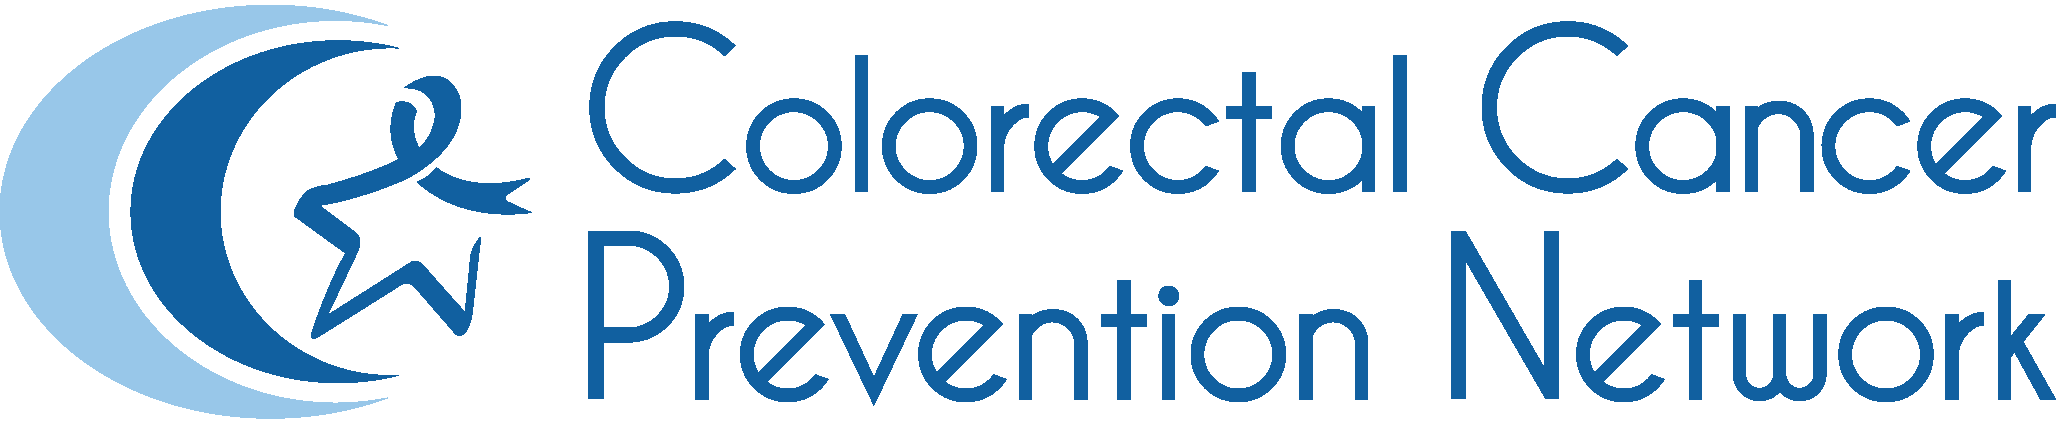 Colorectal-Cancer-prevention-network